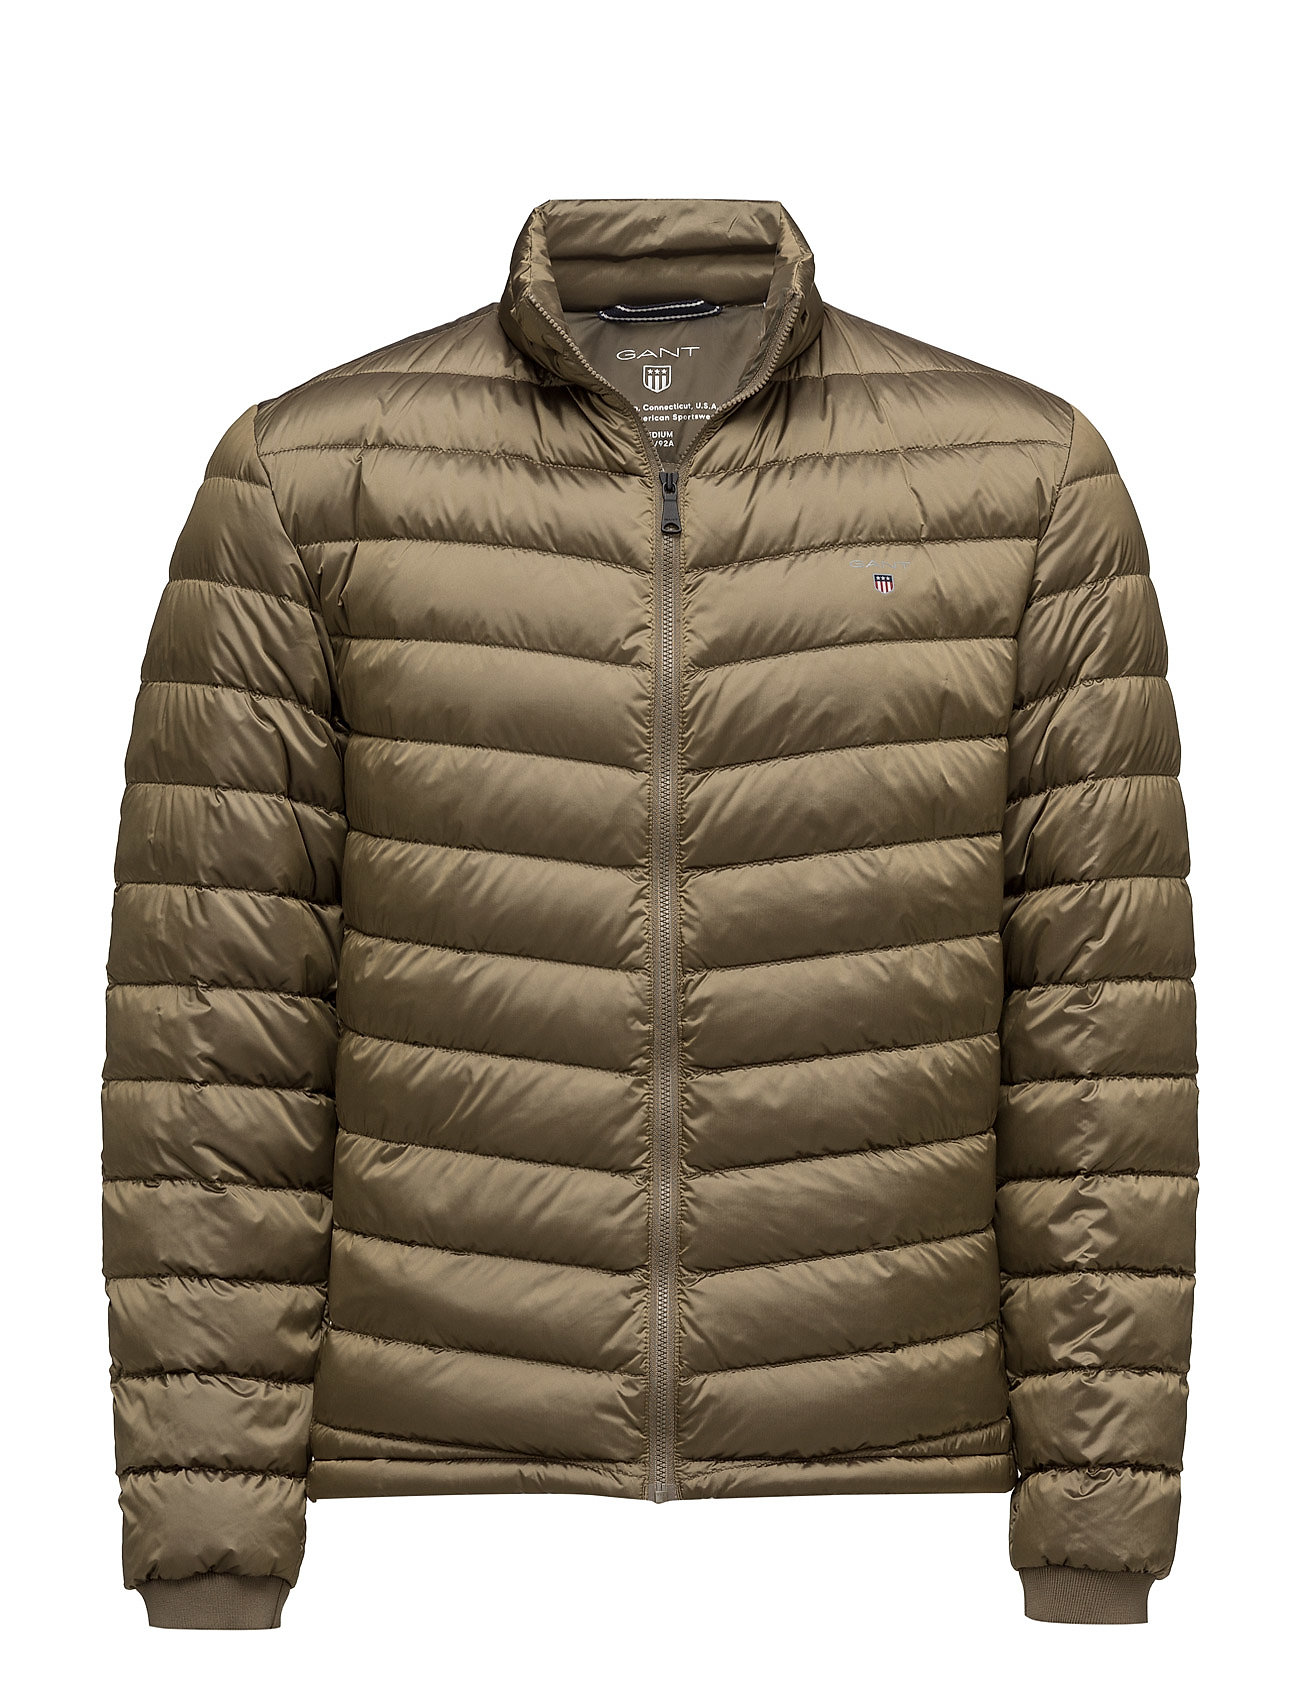 GANT O1. THE AIRLIGHT DOWN JACKET